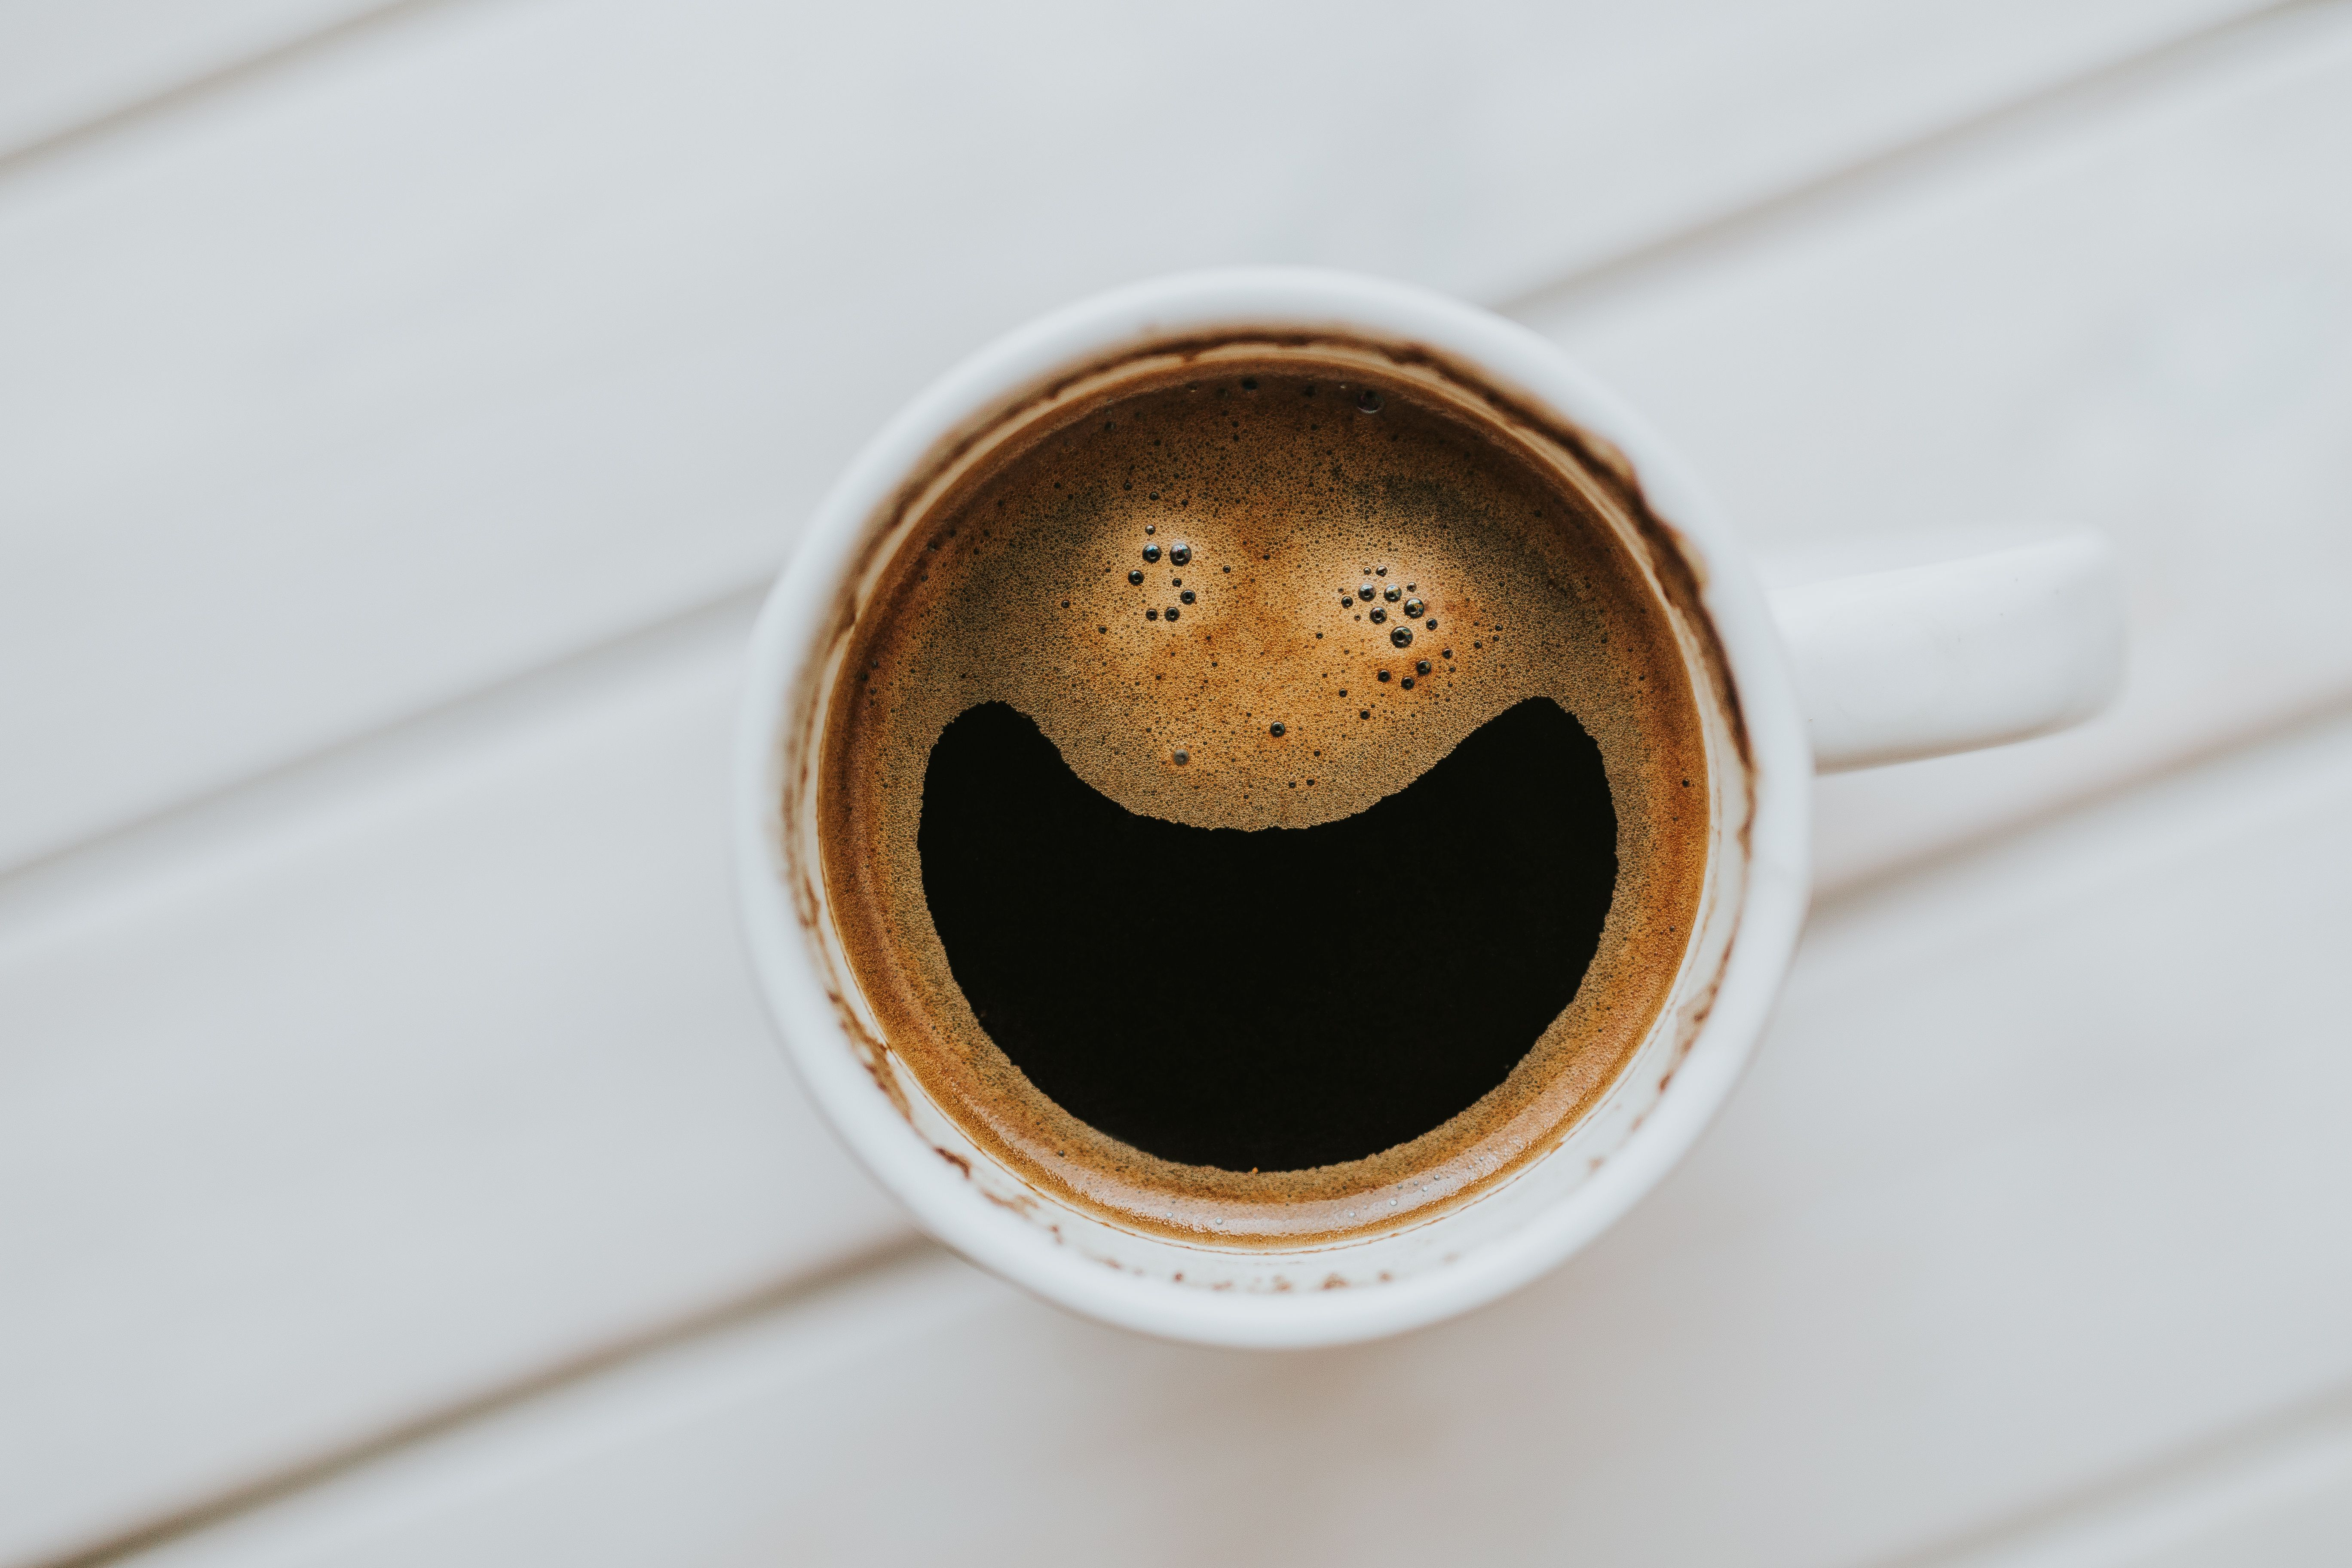 65889 Screensavers and Wallpapers Smile for phone. Download Food, Coffee, Cup, Smile, Foam, Meerschaum, Espresso pictures for free